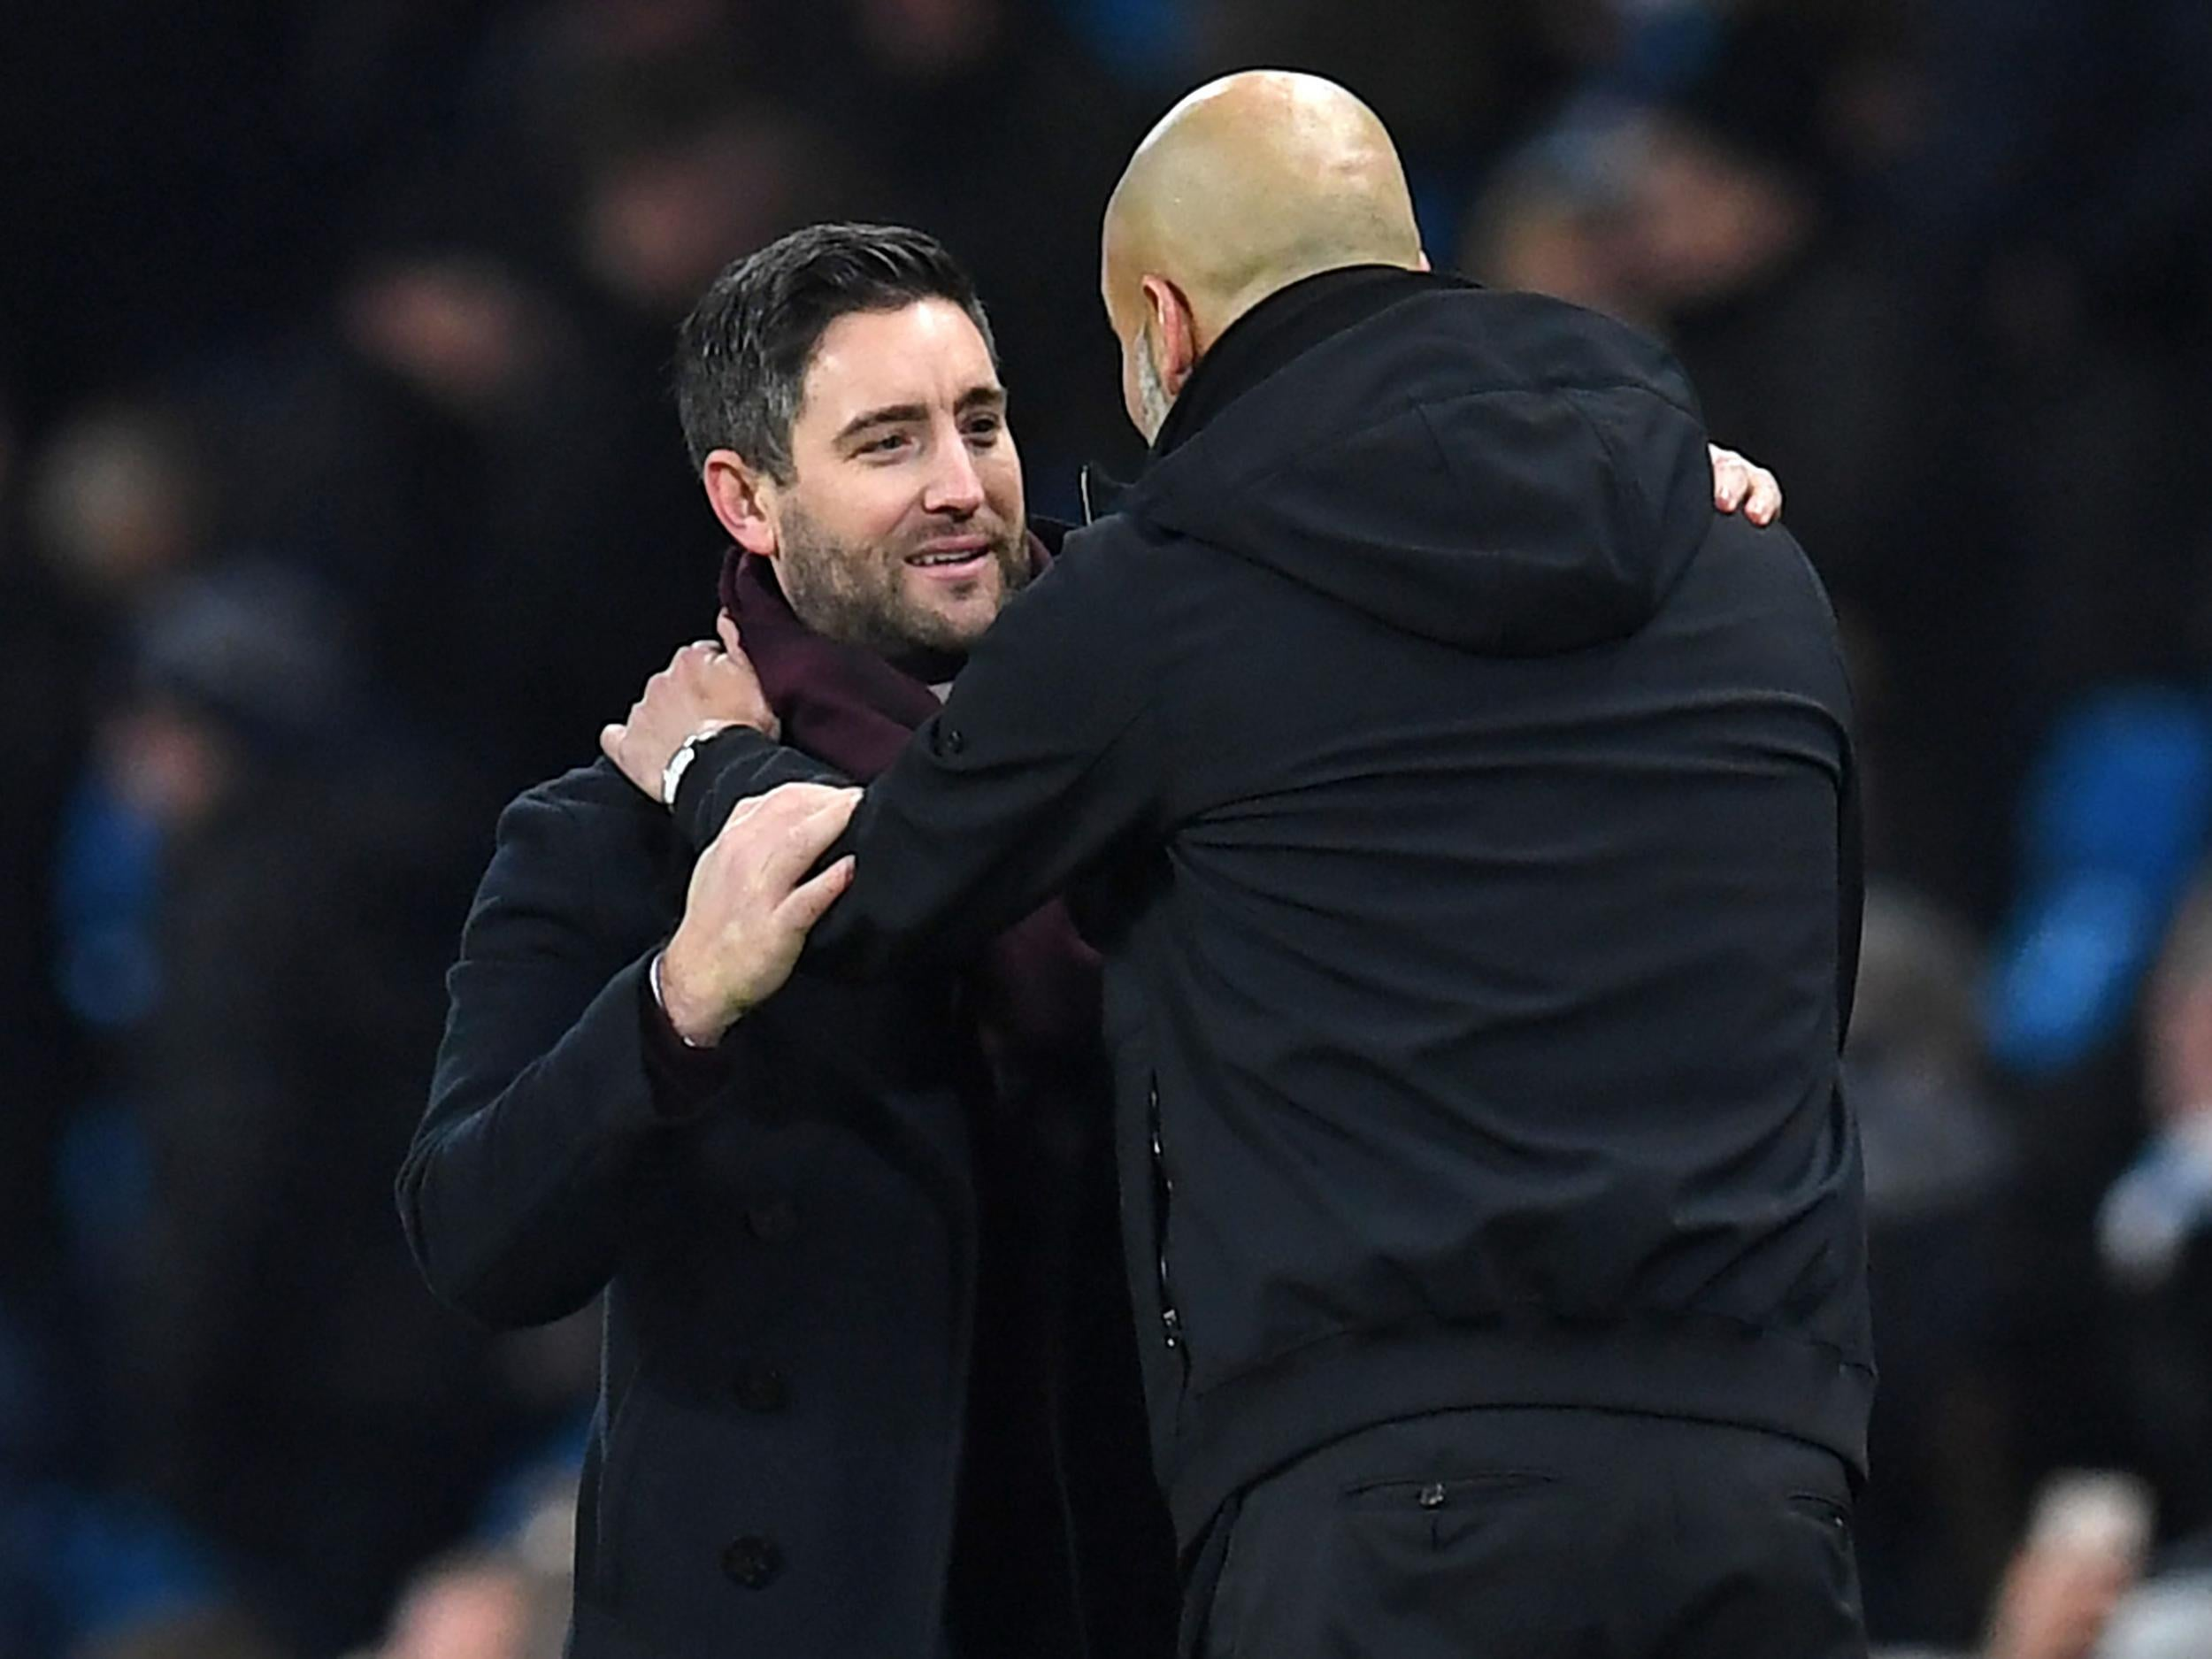 Bristol City manager Lee Johnson reveals what Manchester City counterpart Pep Guardiola said to him